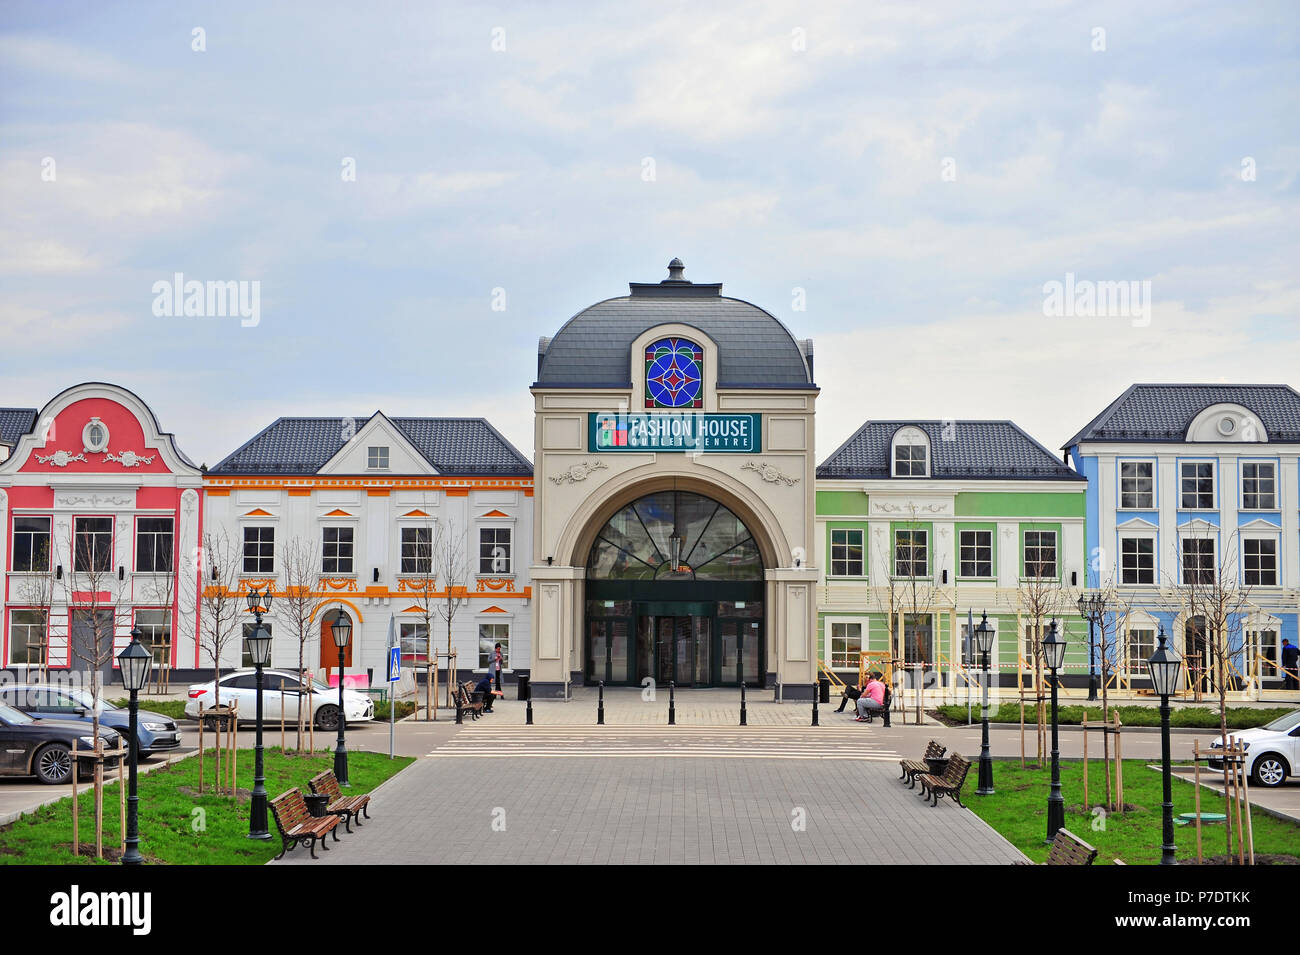 91183f5b7fee MOSCOW, RUSSIA - MAY 02: Facade of Fashion House outlet centre in Moscow on